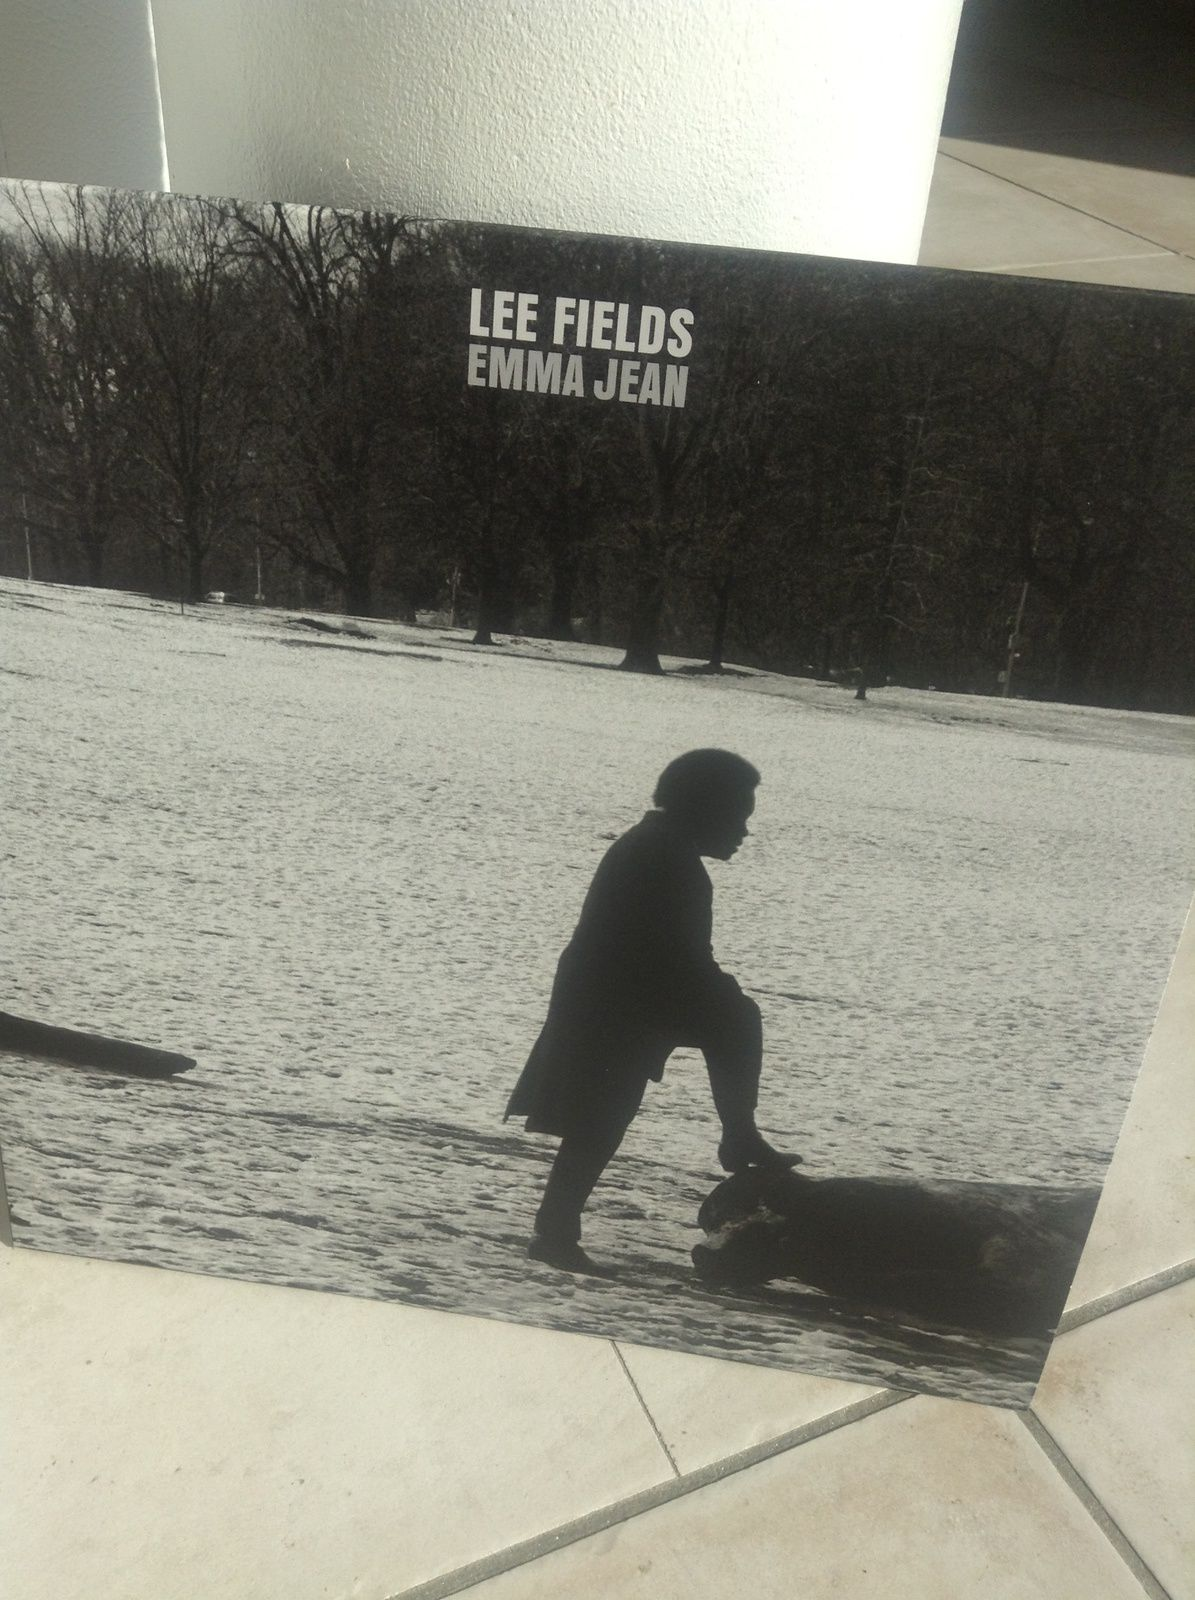 Lee Fields - Emma Jean